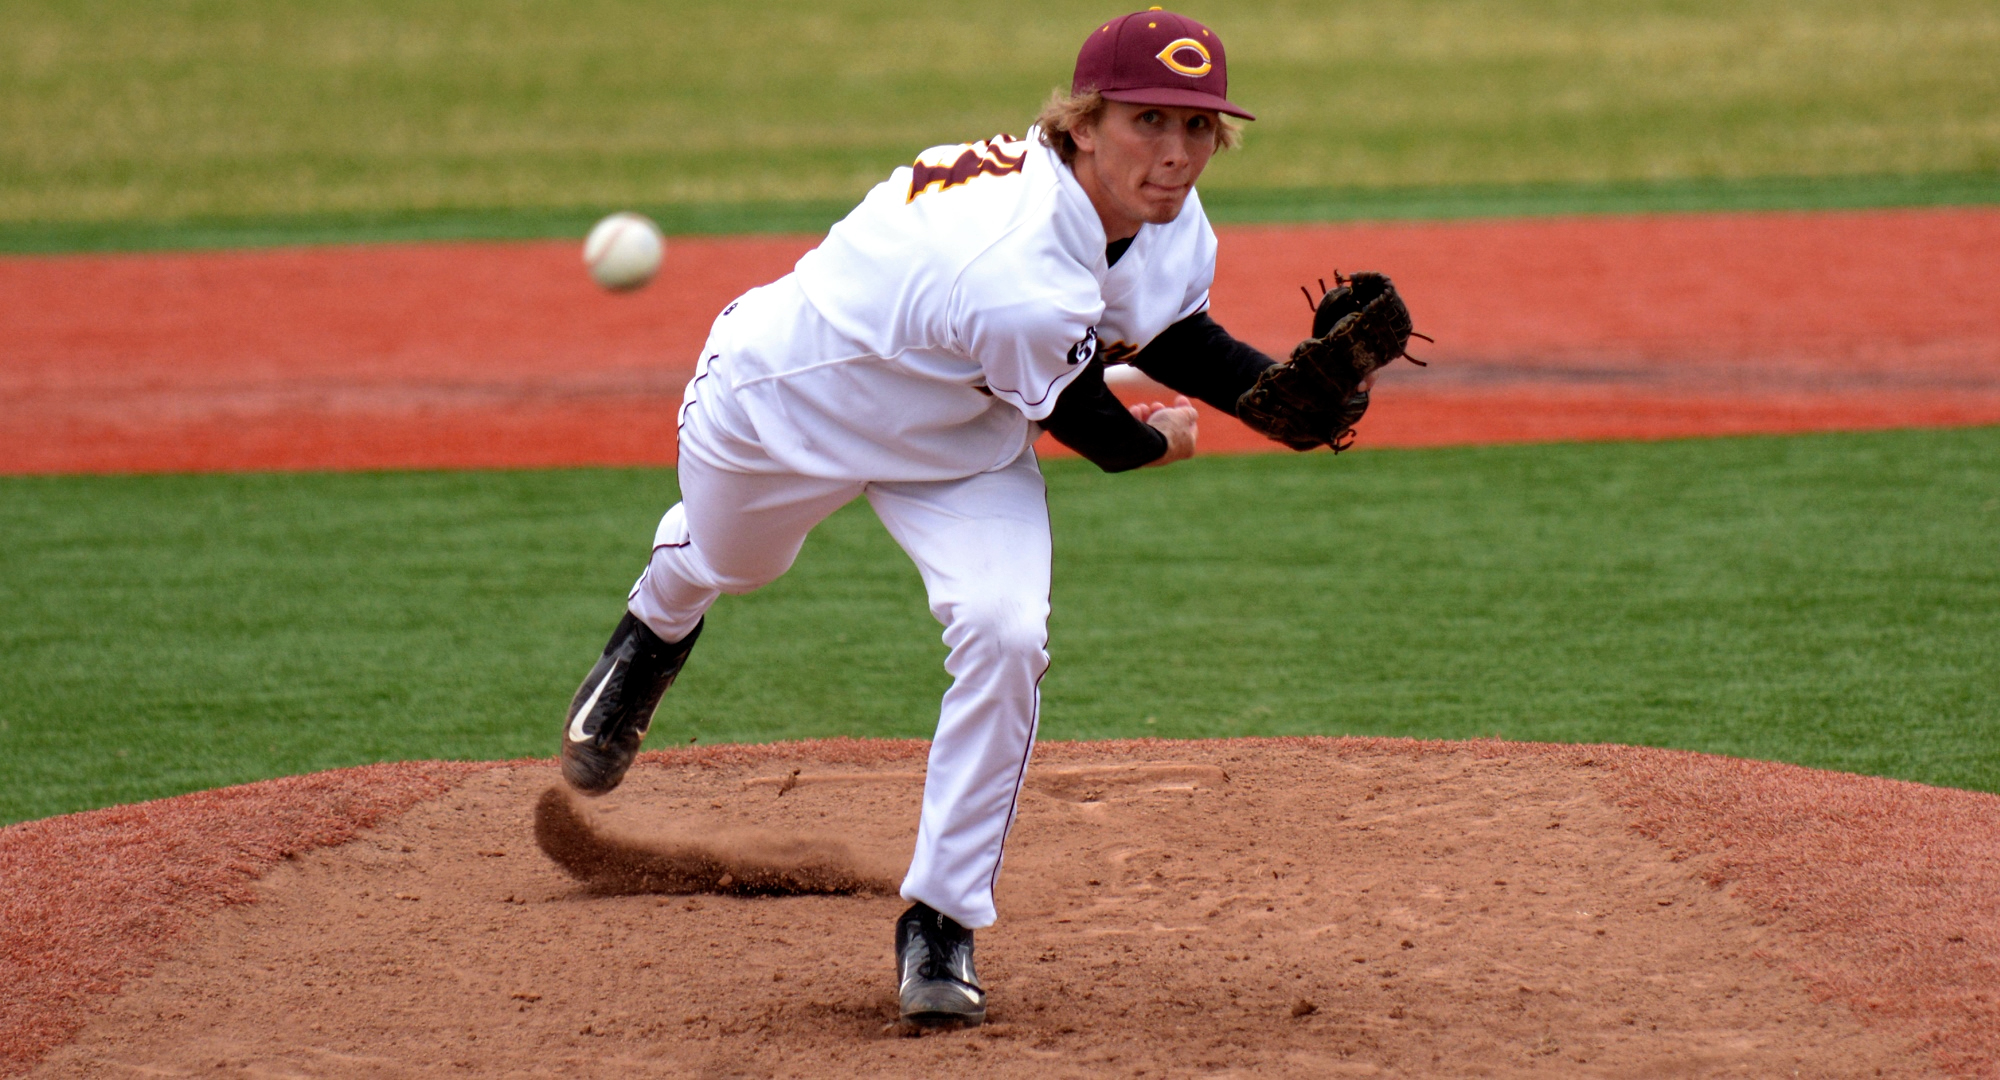 Freshman Austin Ver Steeg delivers a pitch in the first game of the Cobbers' DH vs. Carleton. He went the full 7.0 innings and didn't allow an earned run.